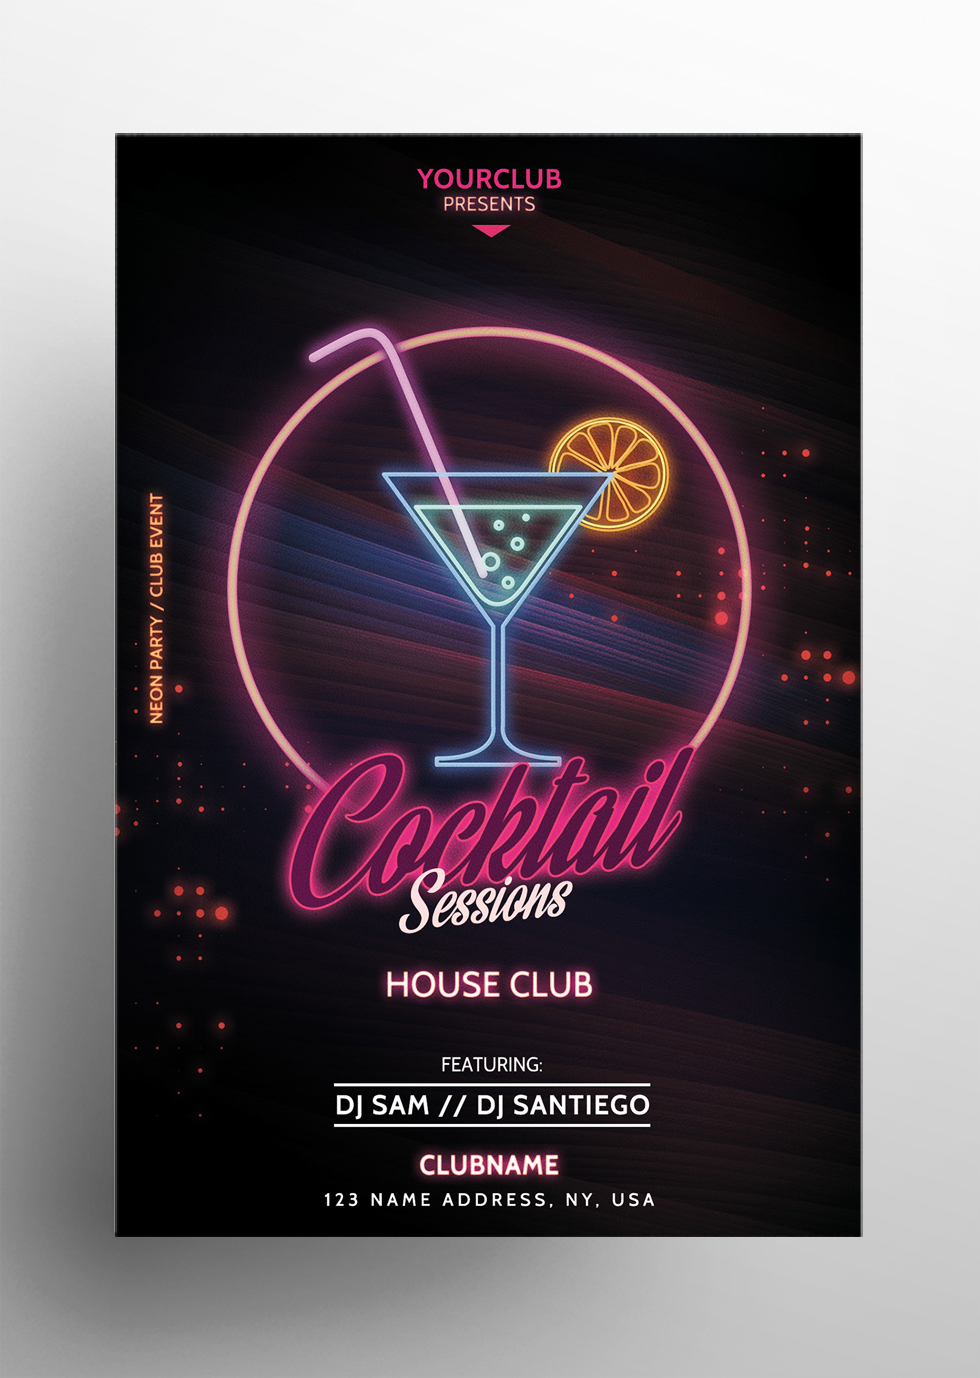 Cocktail Sessions - Free PSD Flyer Template